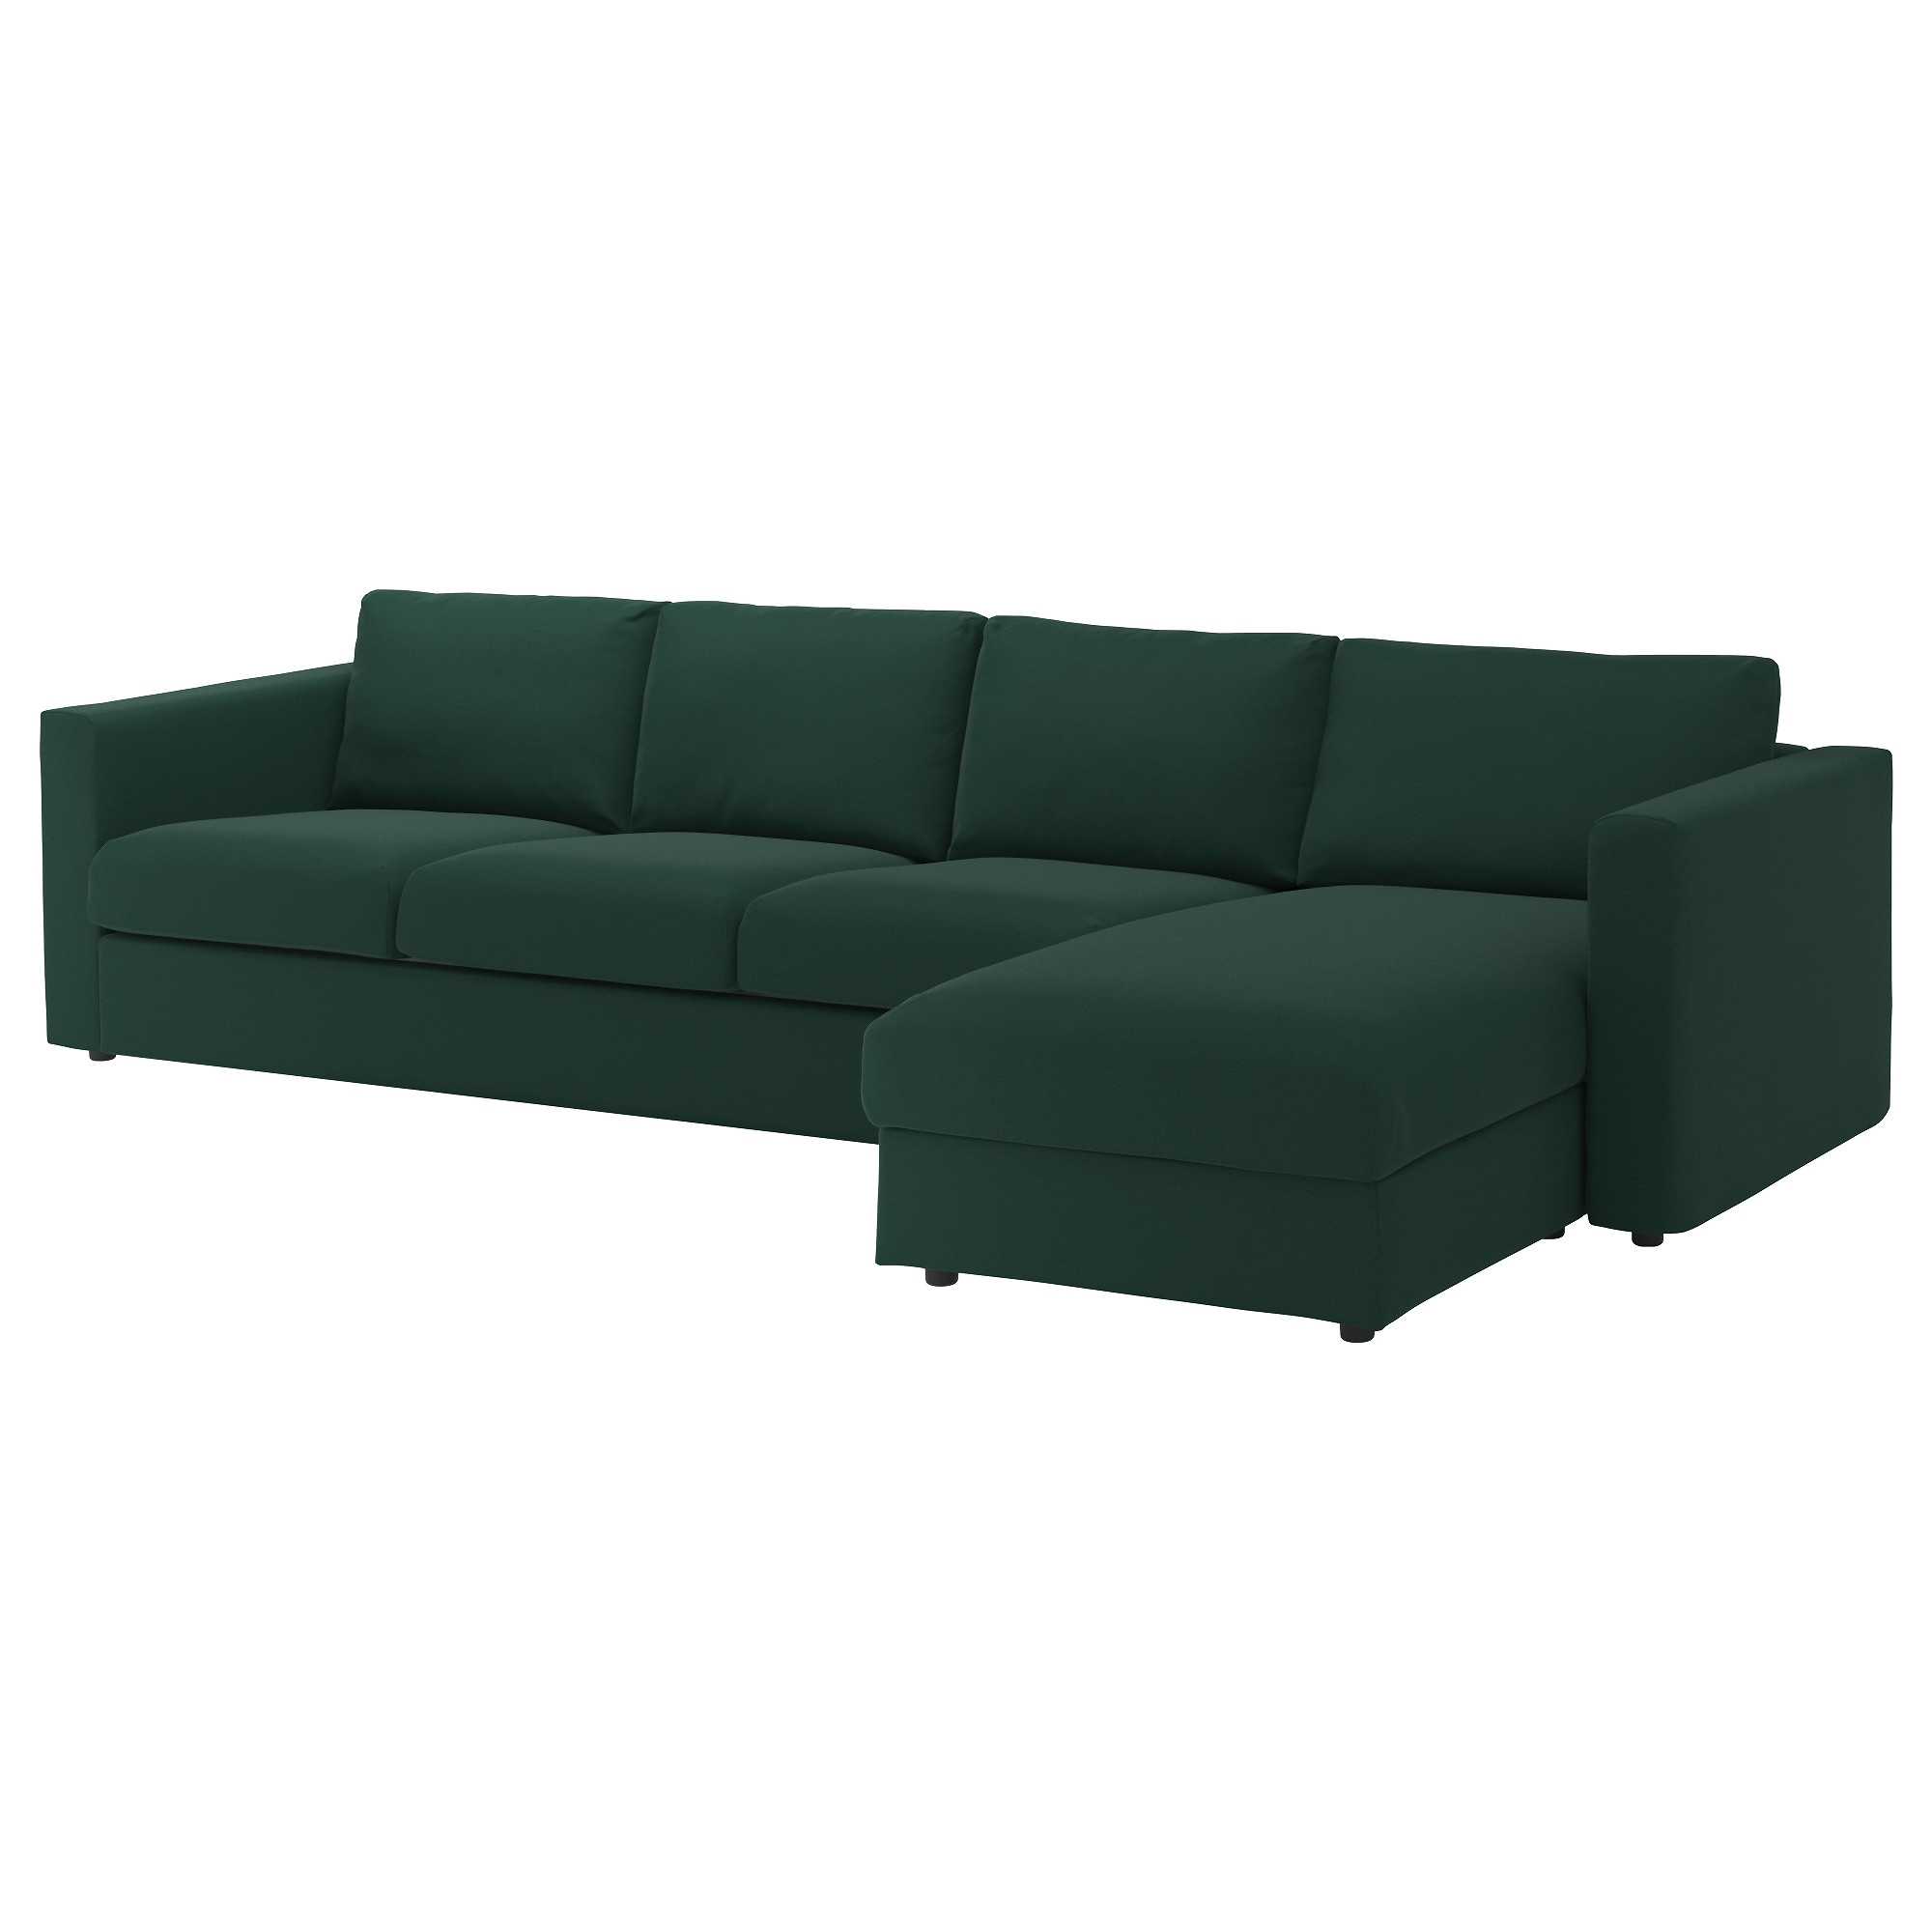 Fabric Sectional Sofas IKEA